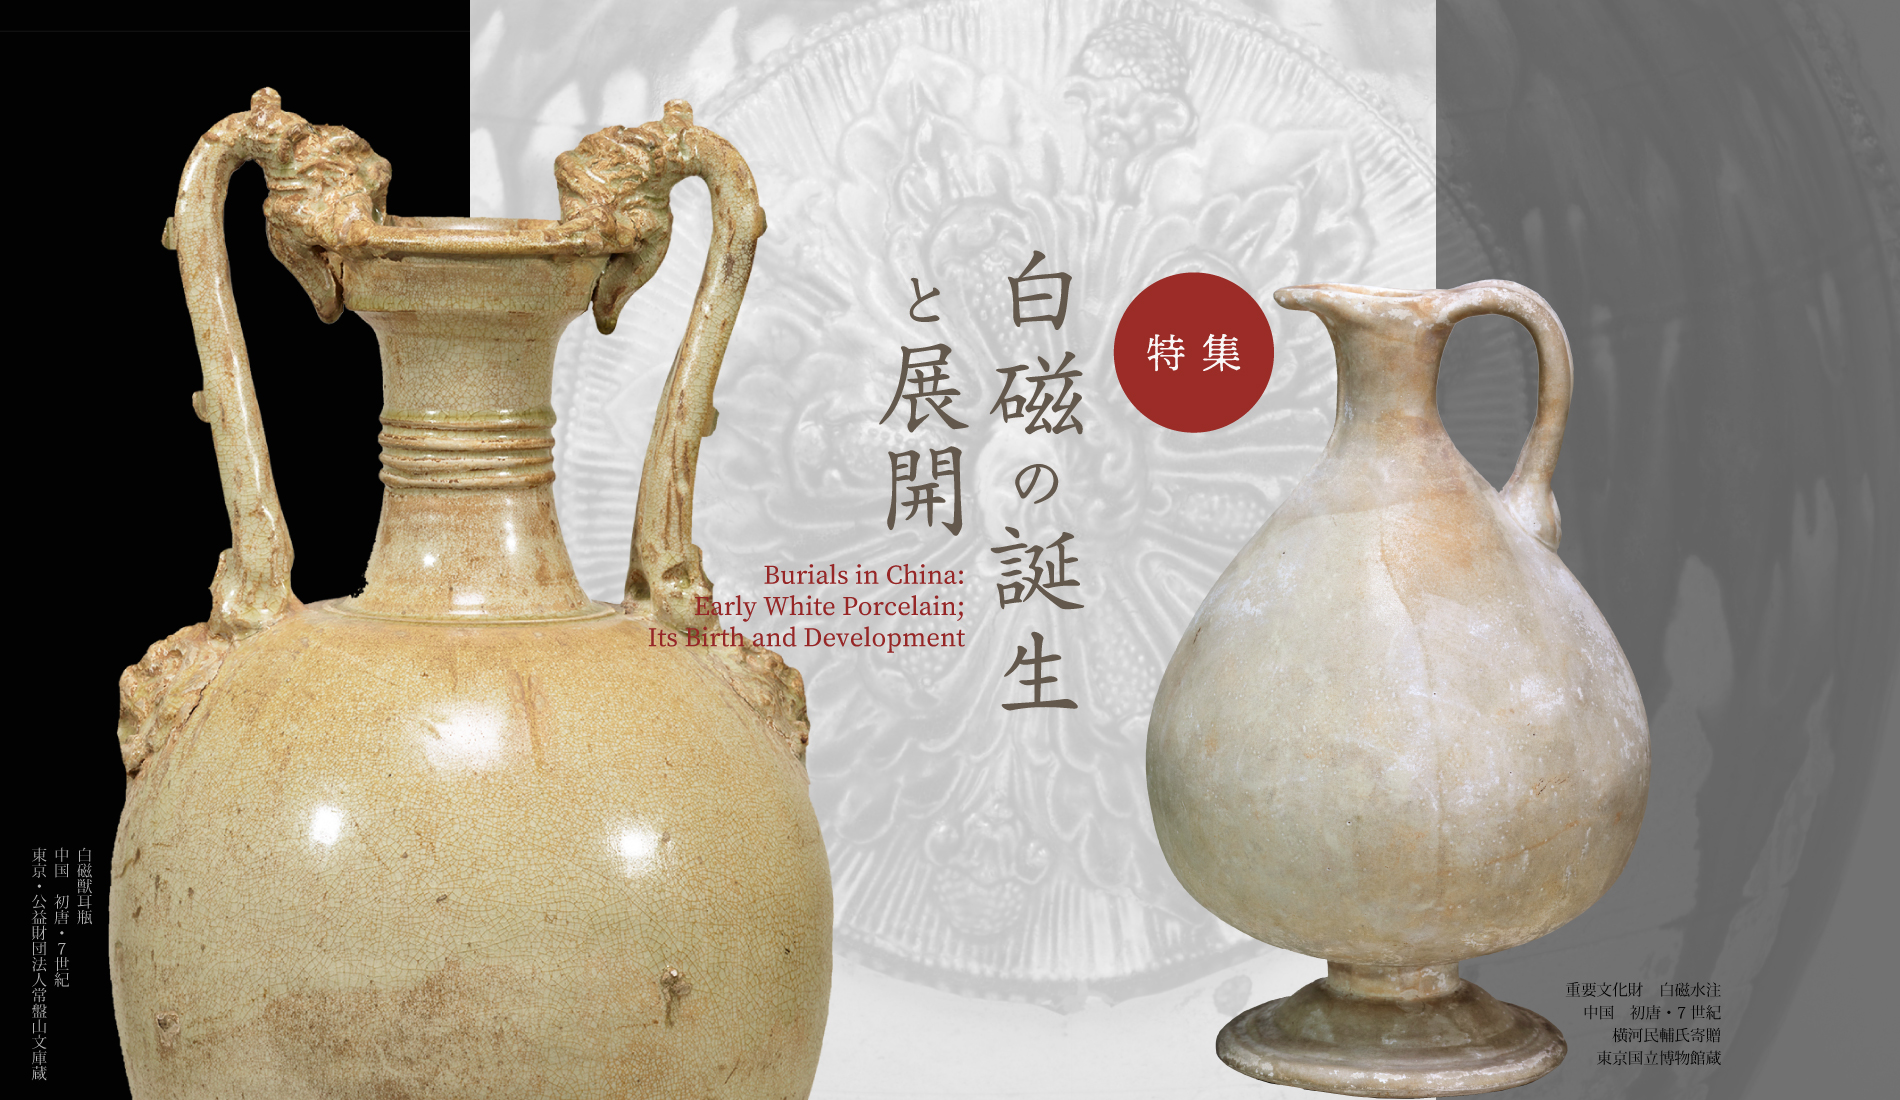 Burials in China: Early White Porcelain: Its Birth and Development